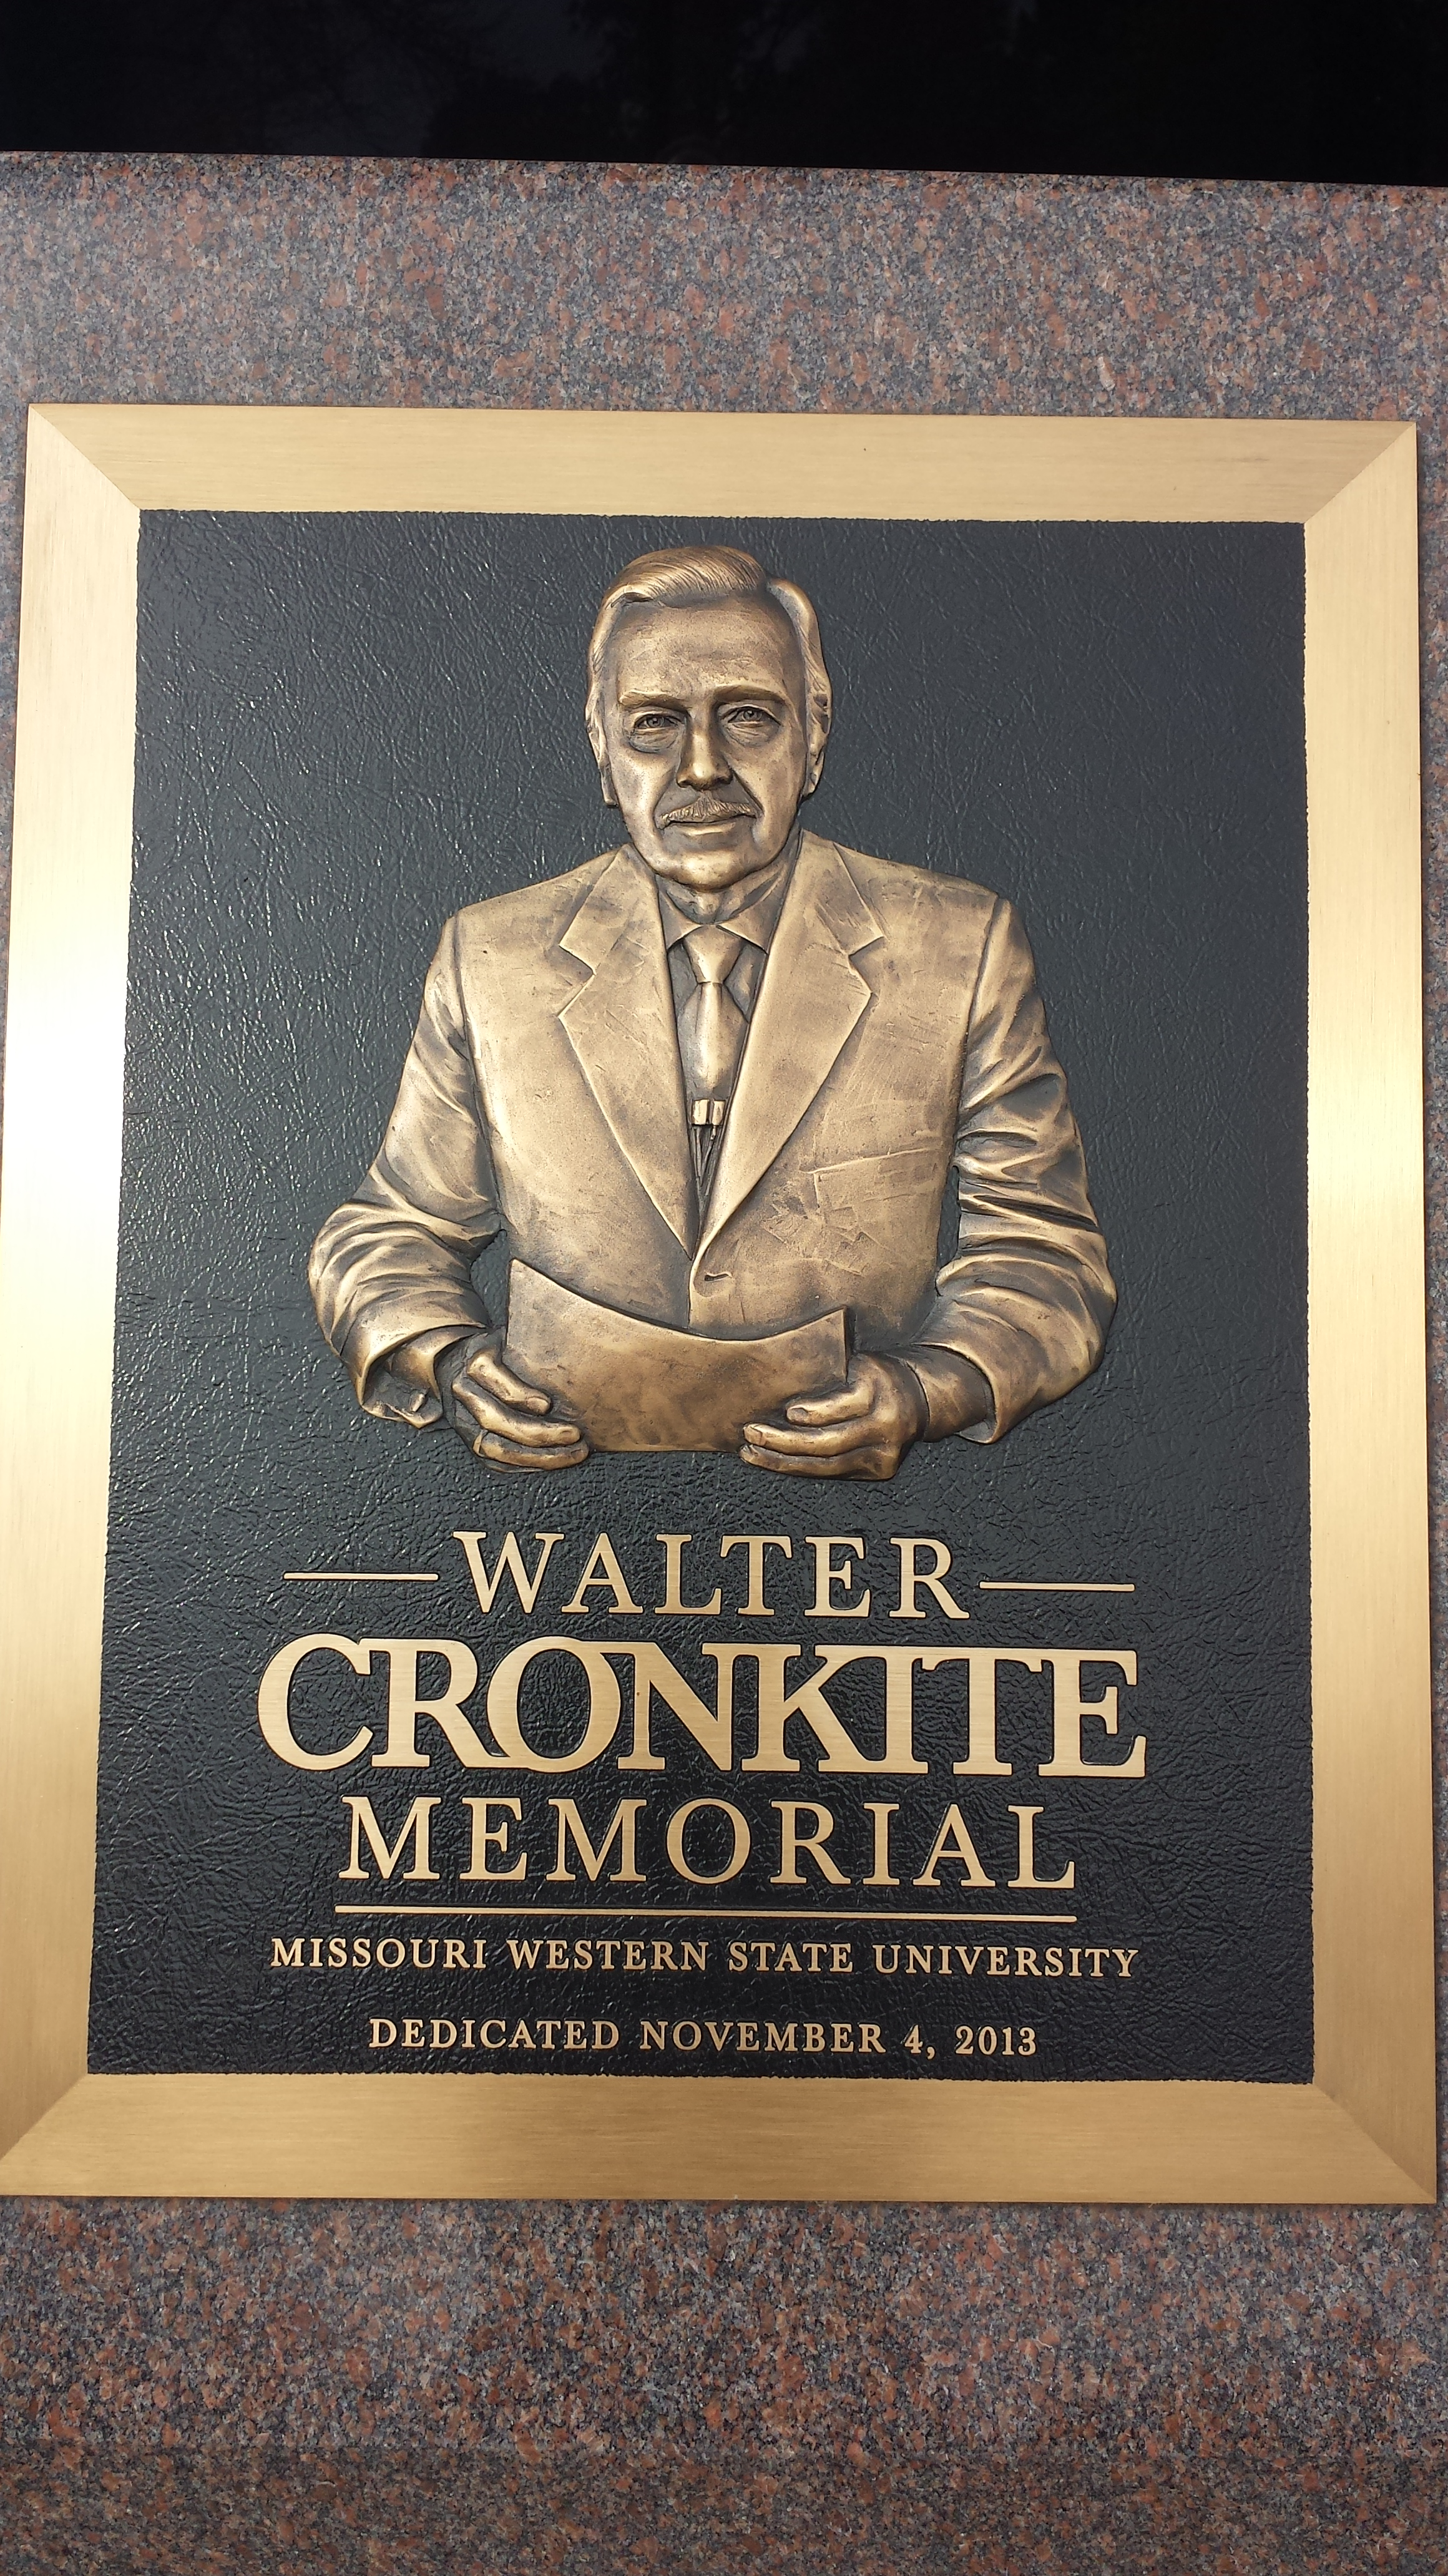 What are some things Walter Cronkite did?